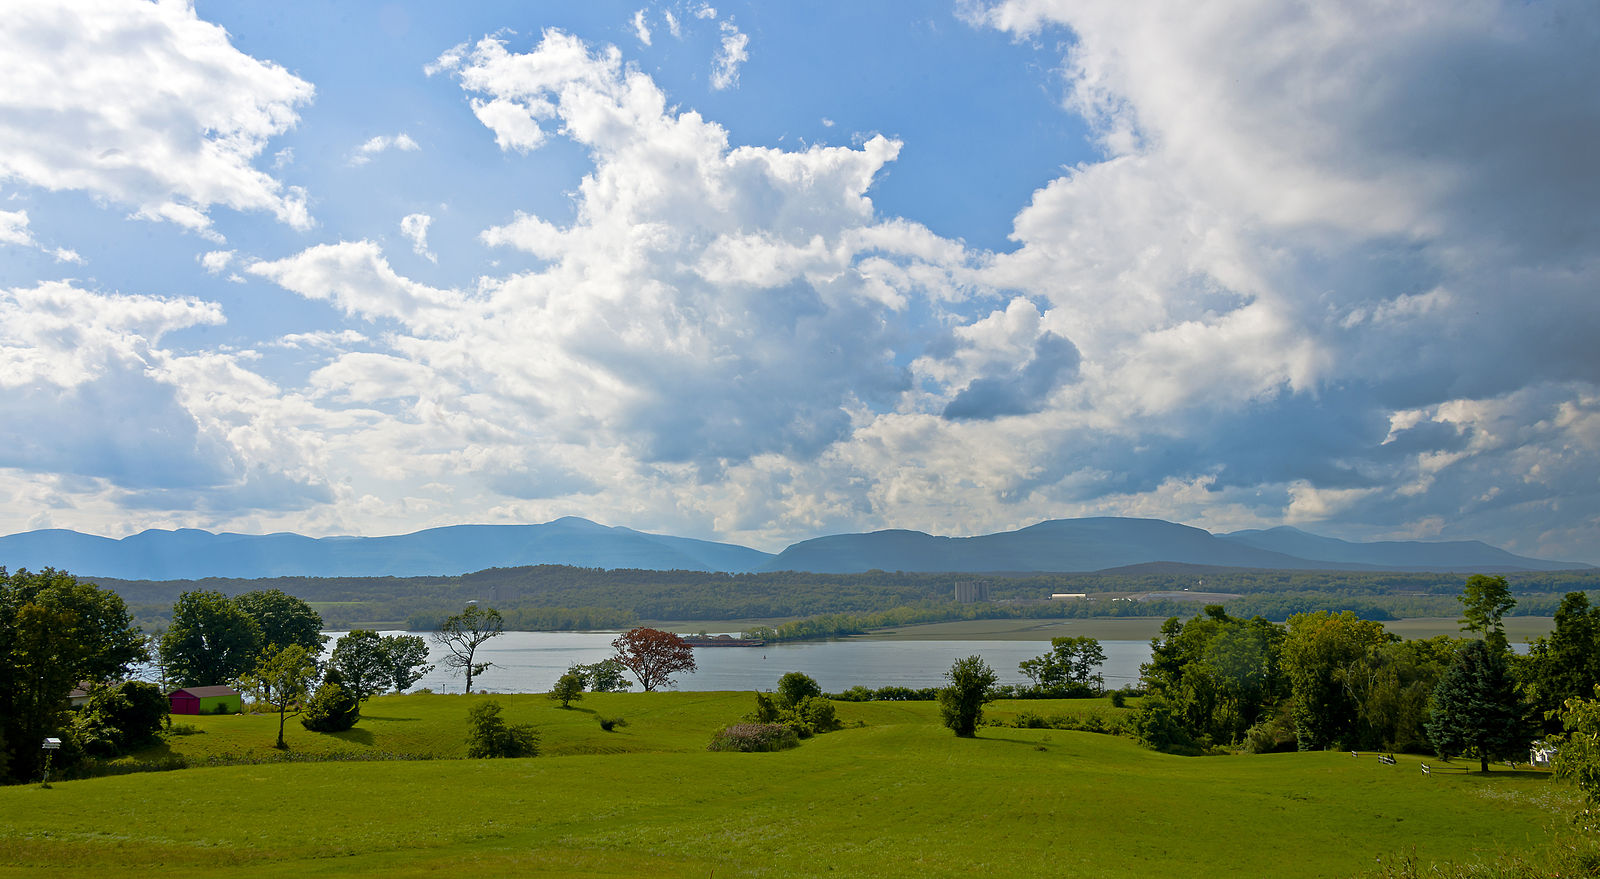 Hudson River Valley, NYJune 19-24, 2019 -